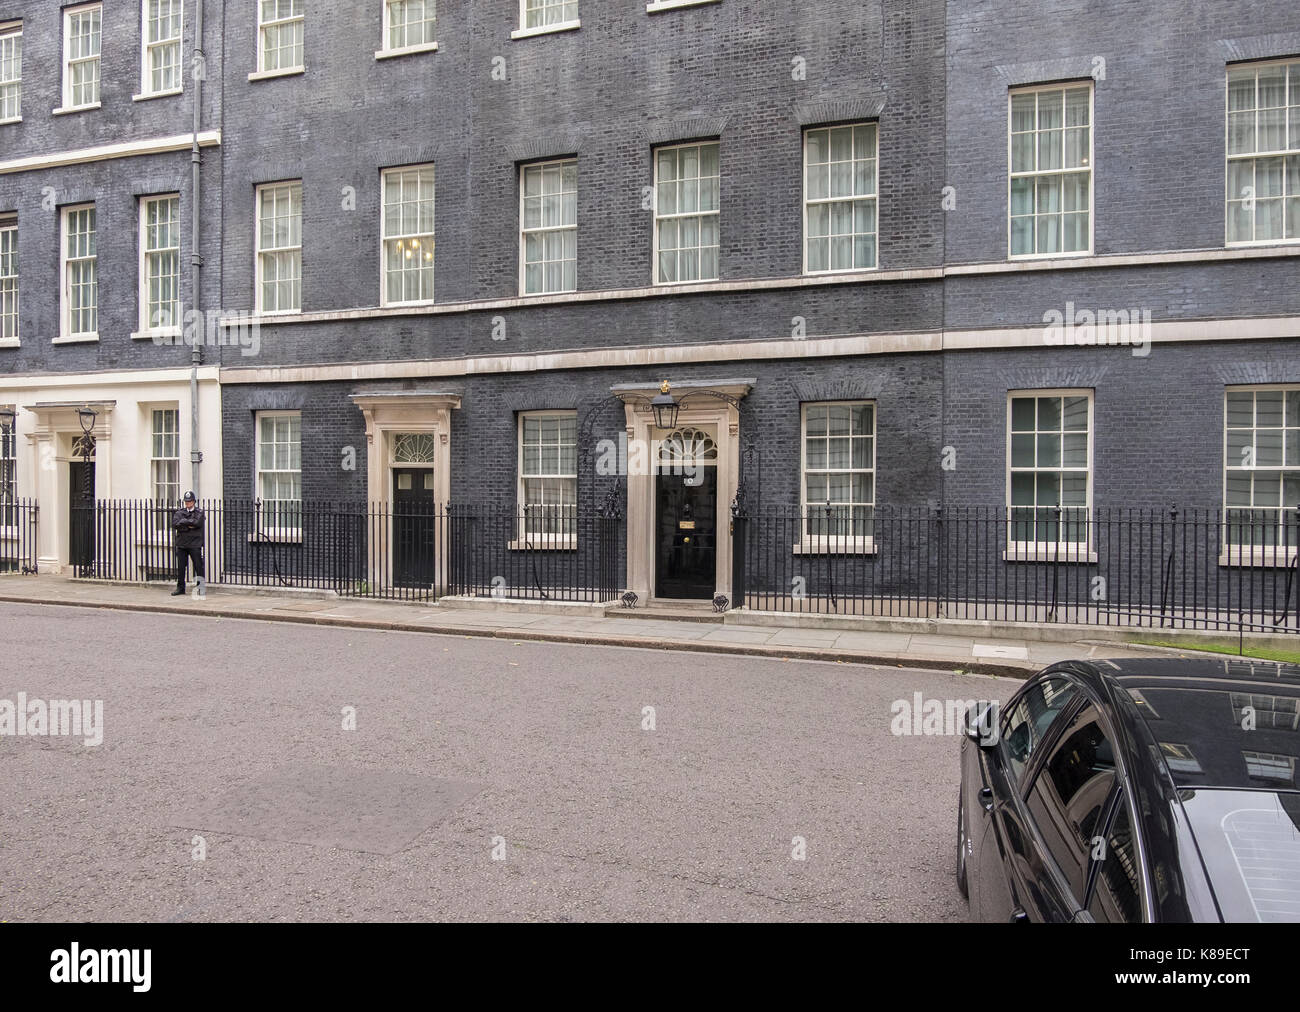 Metropolitan police officer and ministerial car outside No 10 Downing Street, London, UK. Credit: Malcolm Park/Alamy - Stock Image